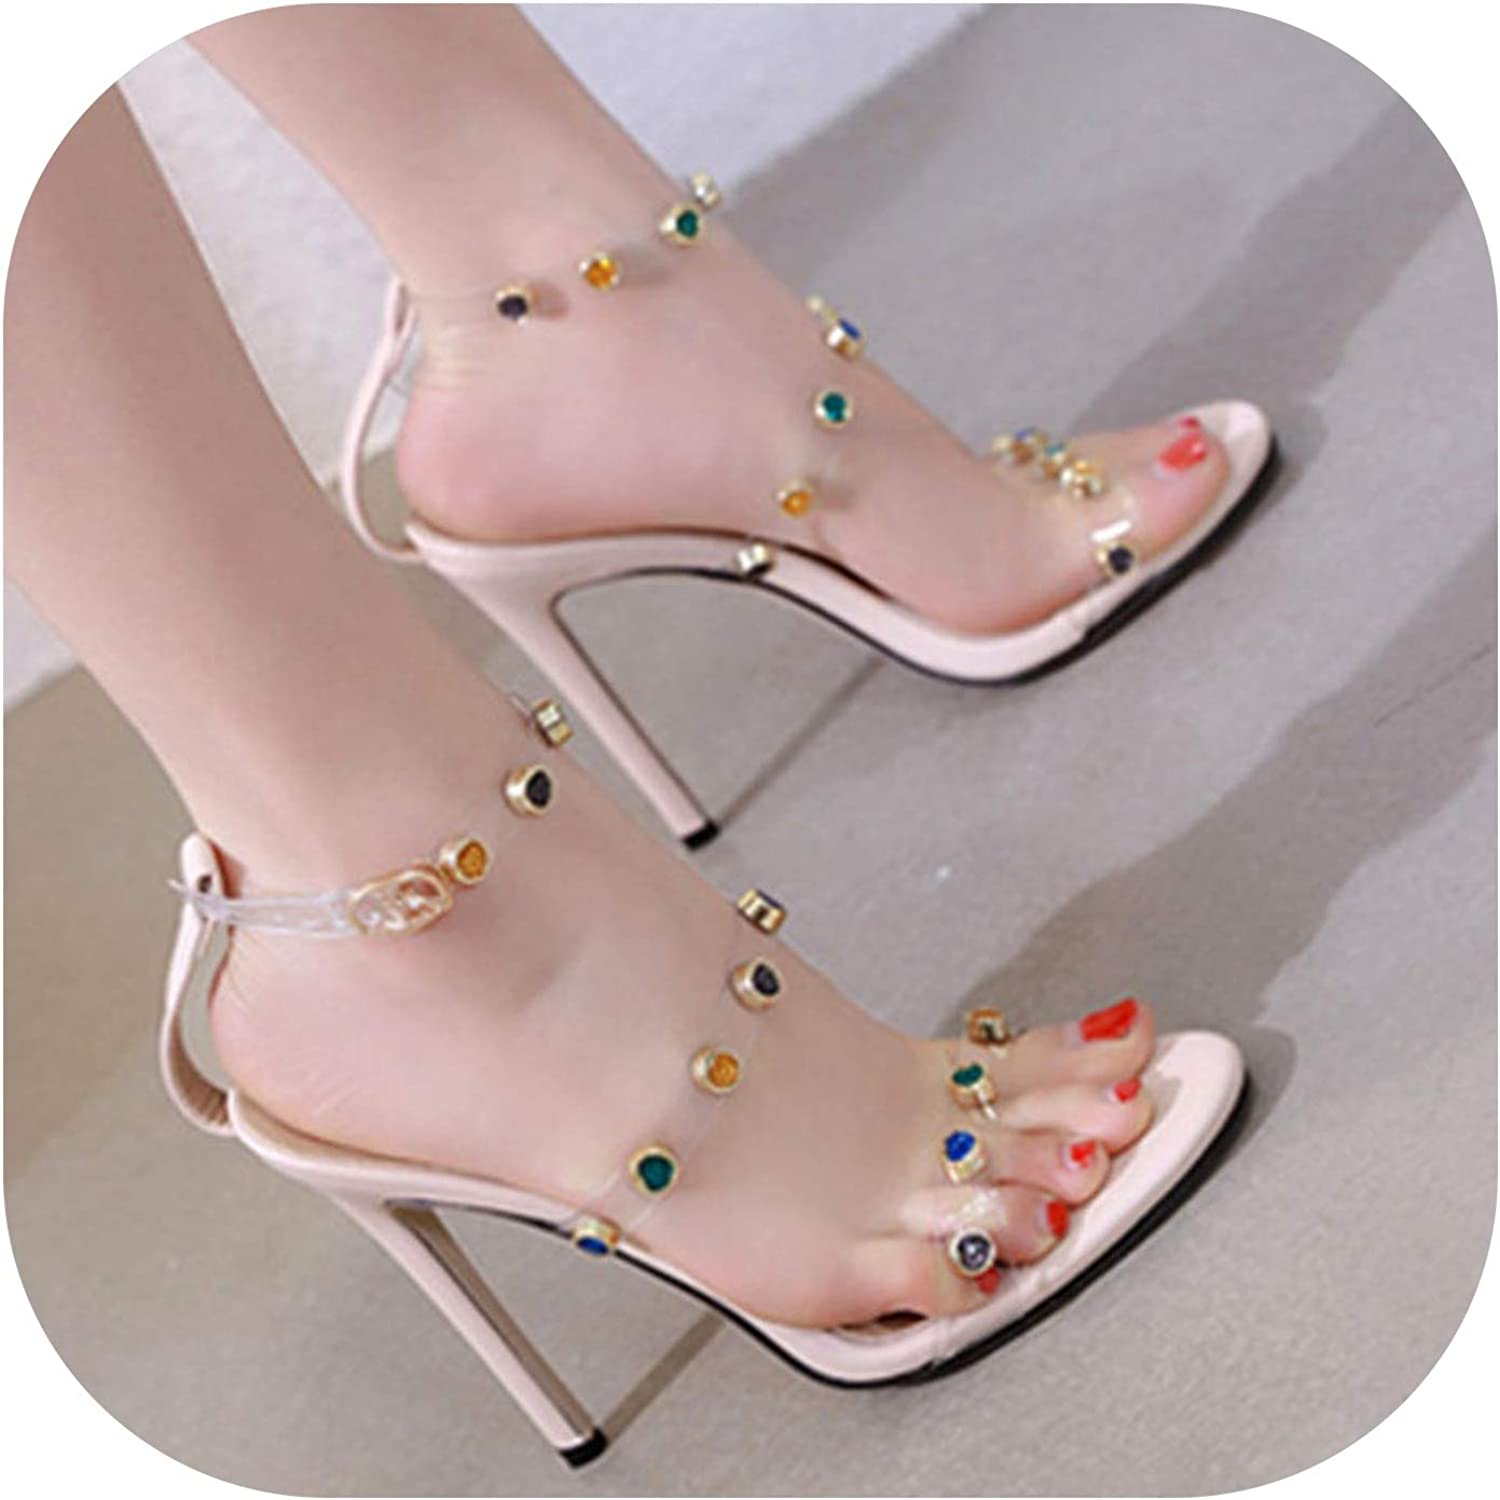 Women's shoes Sandal Slingbacks Rivets Sandals Summer Stiletto Sandals